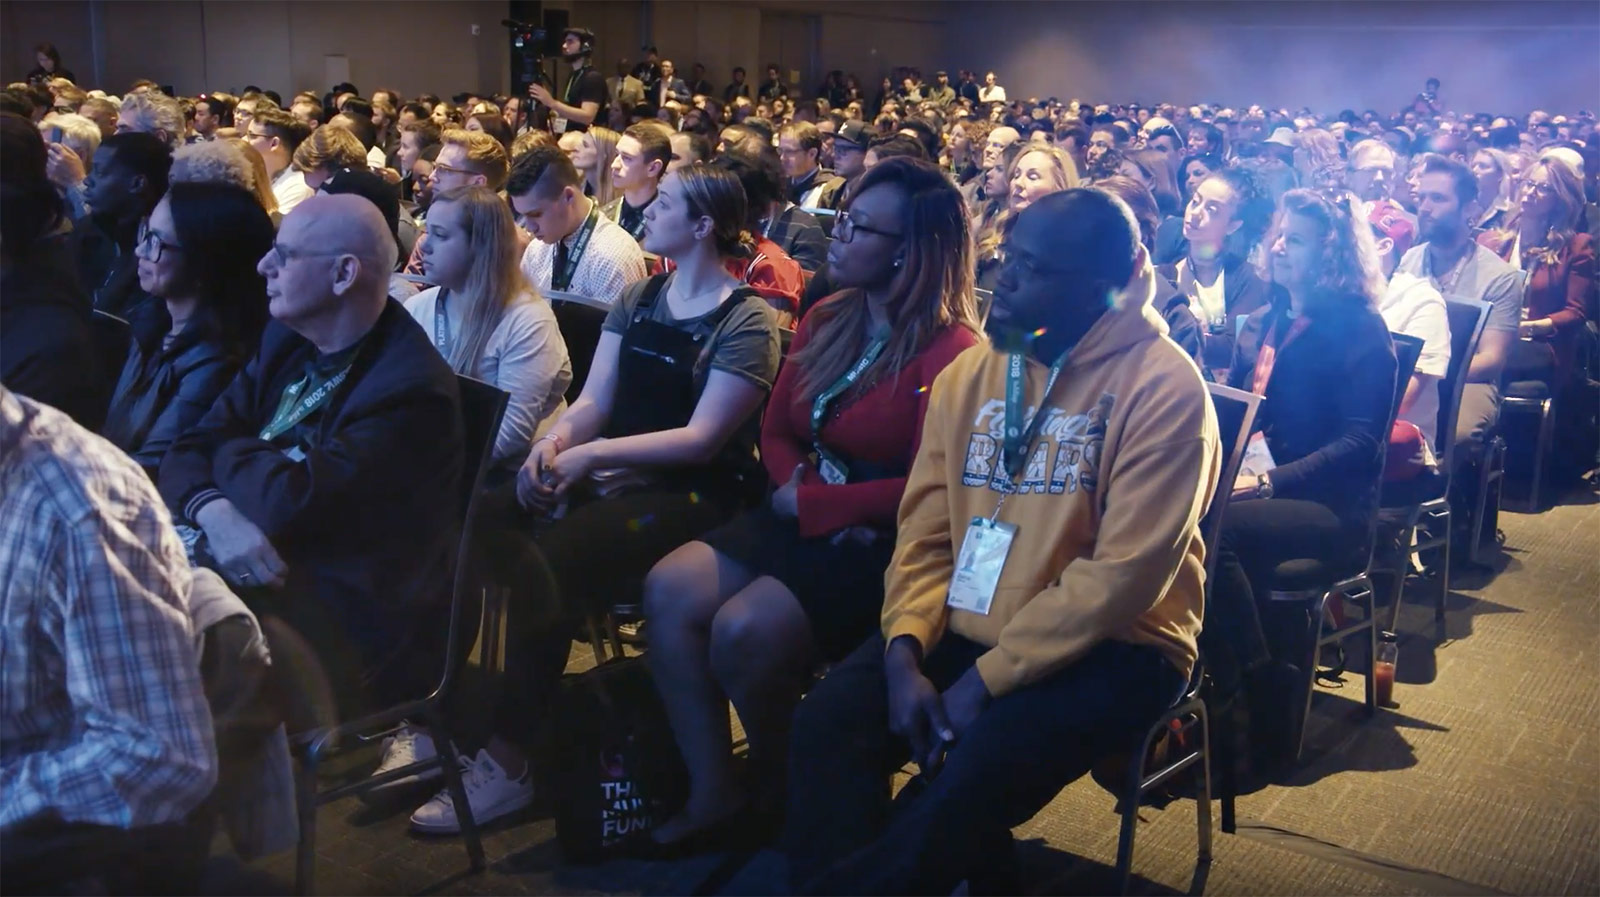 A crowded session at SXSW